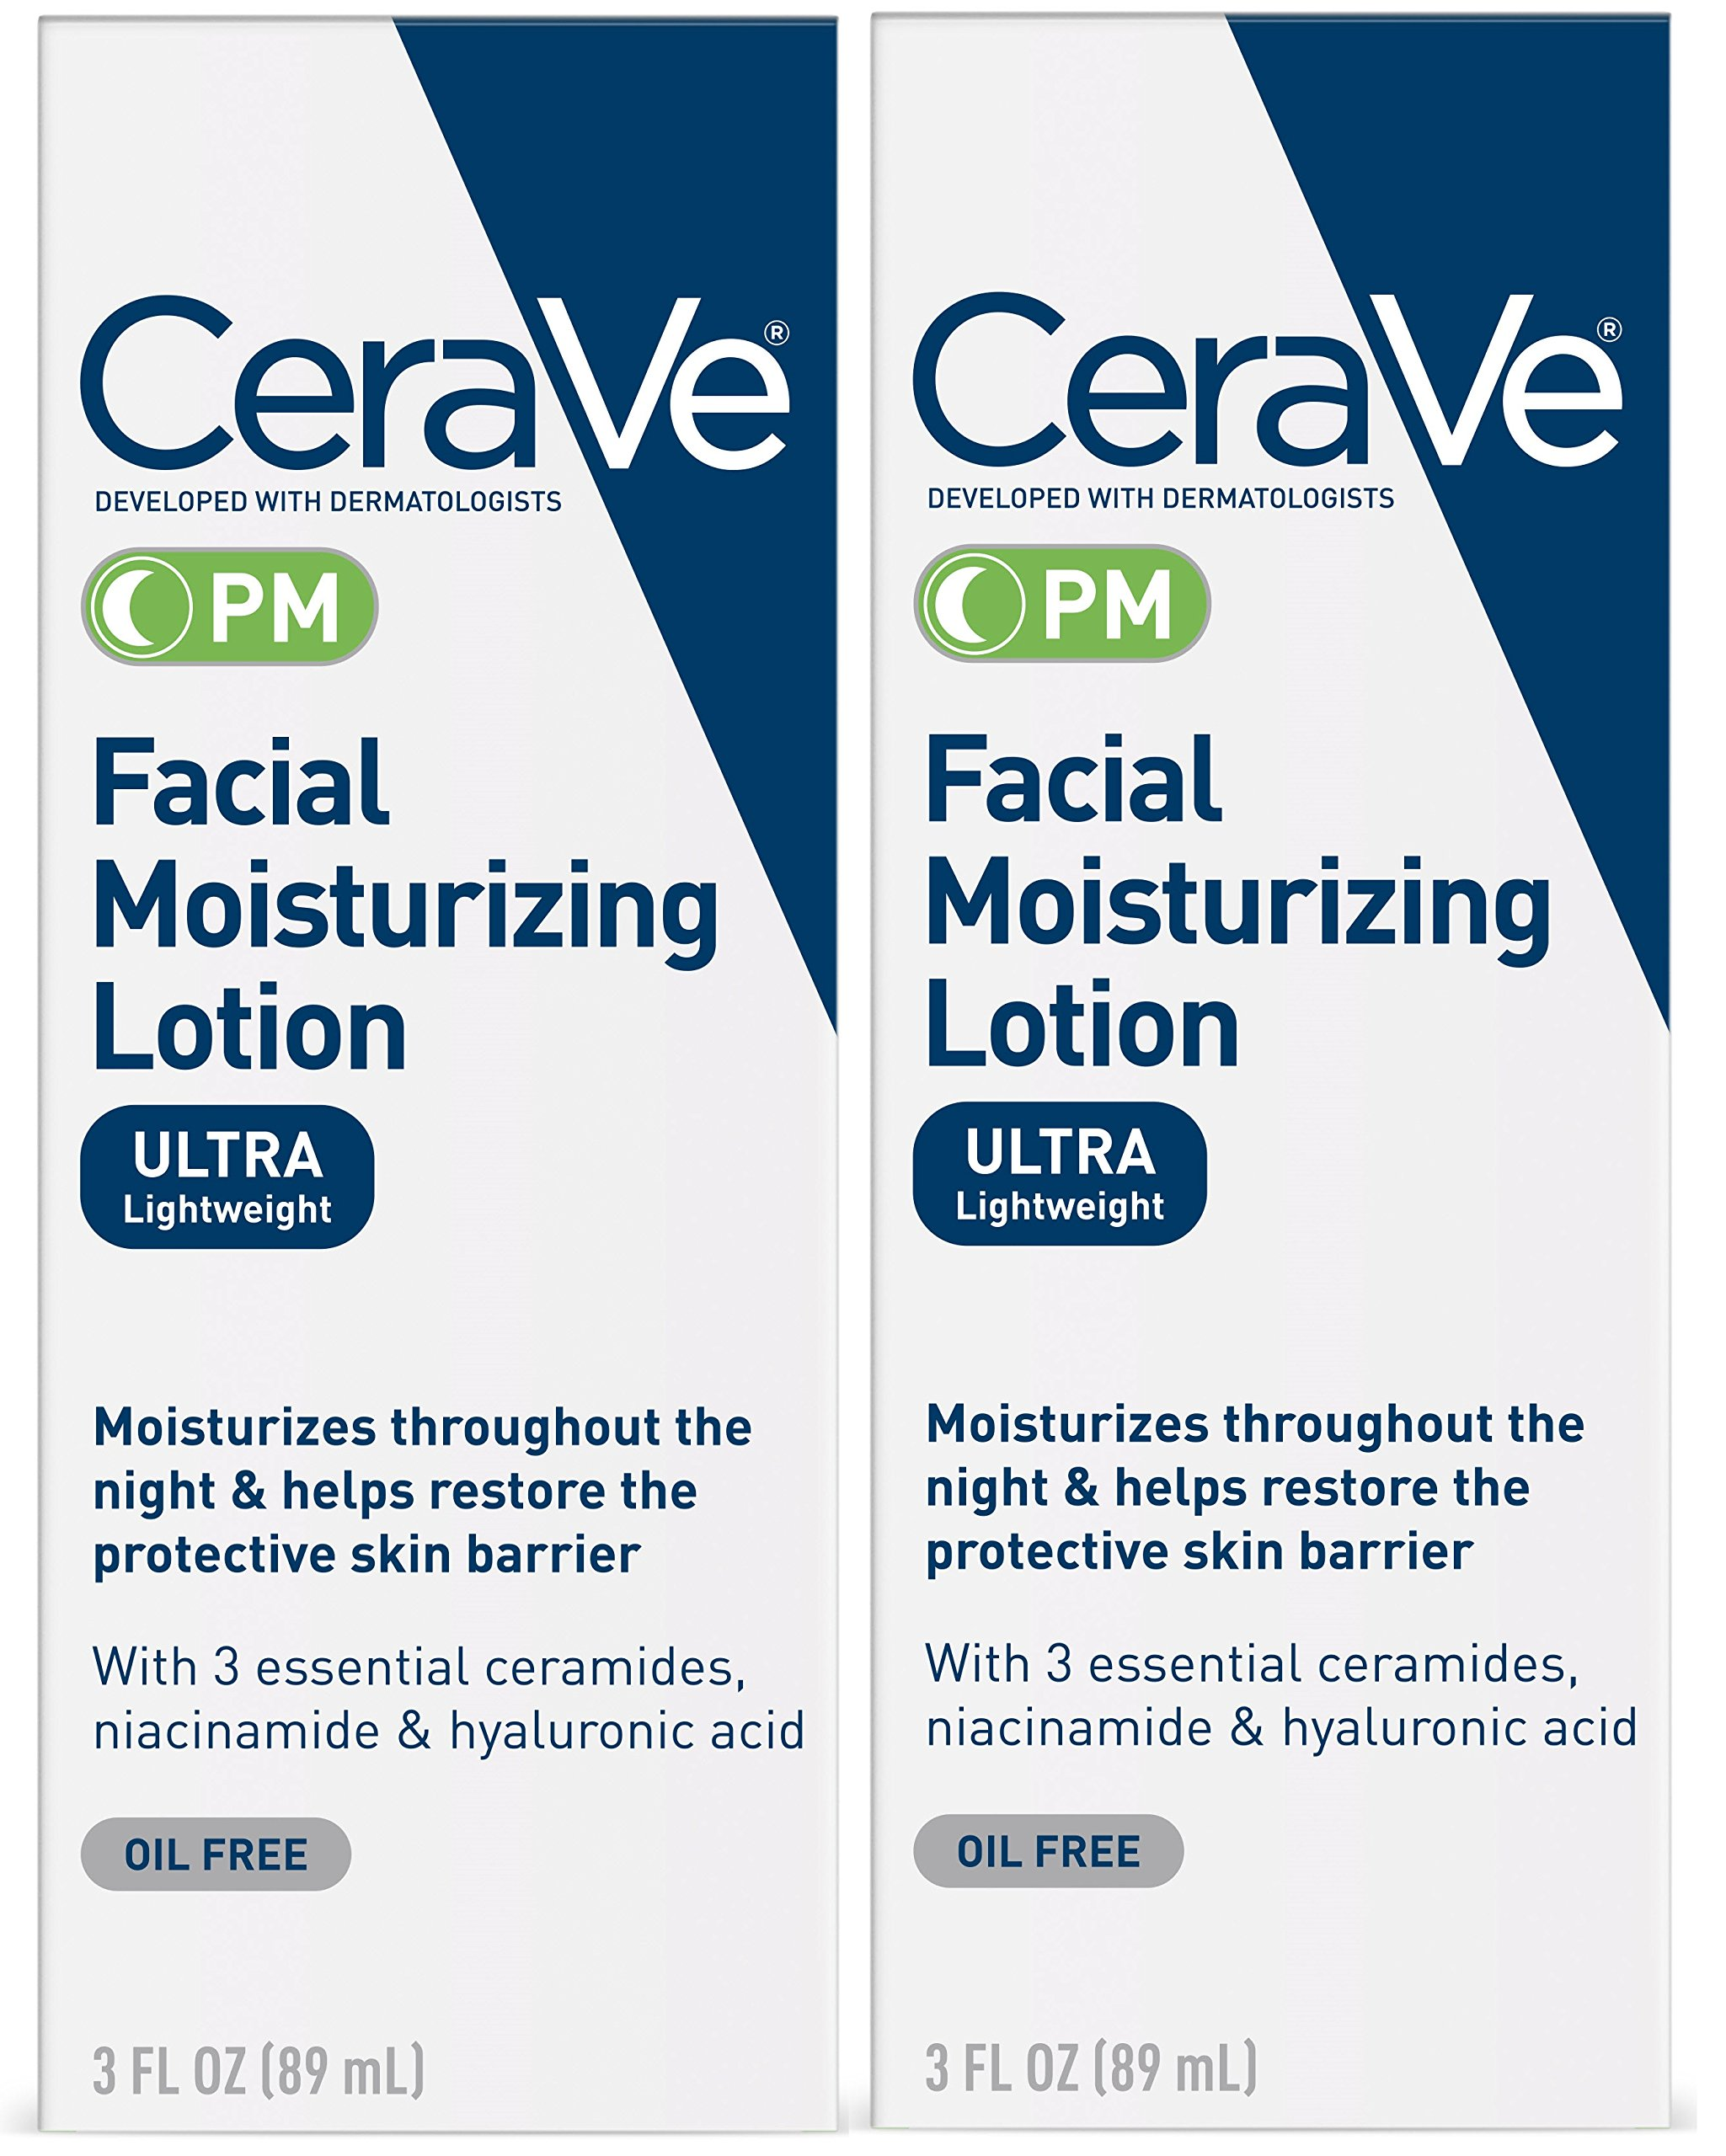 CeraVe Facial Moisturizing Lotion PM | 3 Ounce (Pack of 2) | Ultra Lightweight, Night Face Moisturizer | Fragrance Free by CeraVe